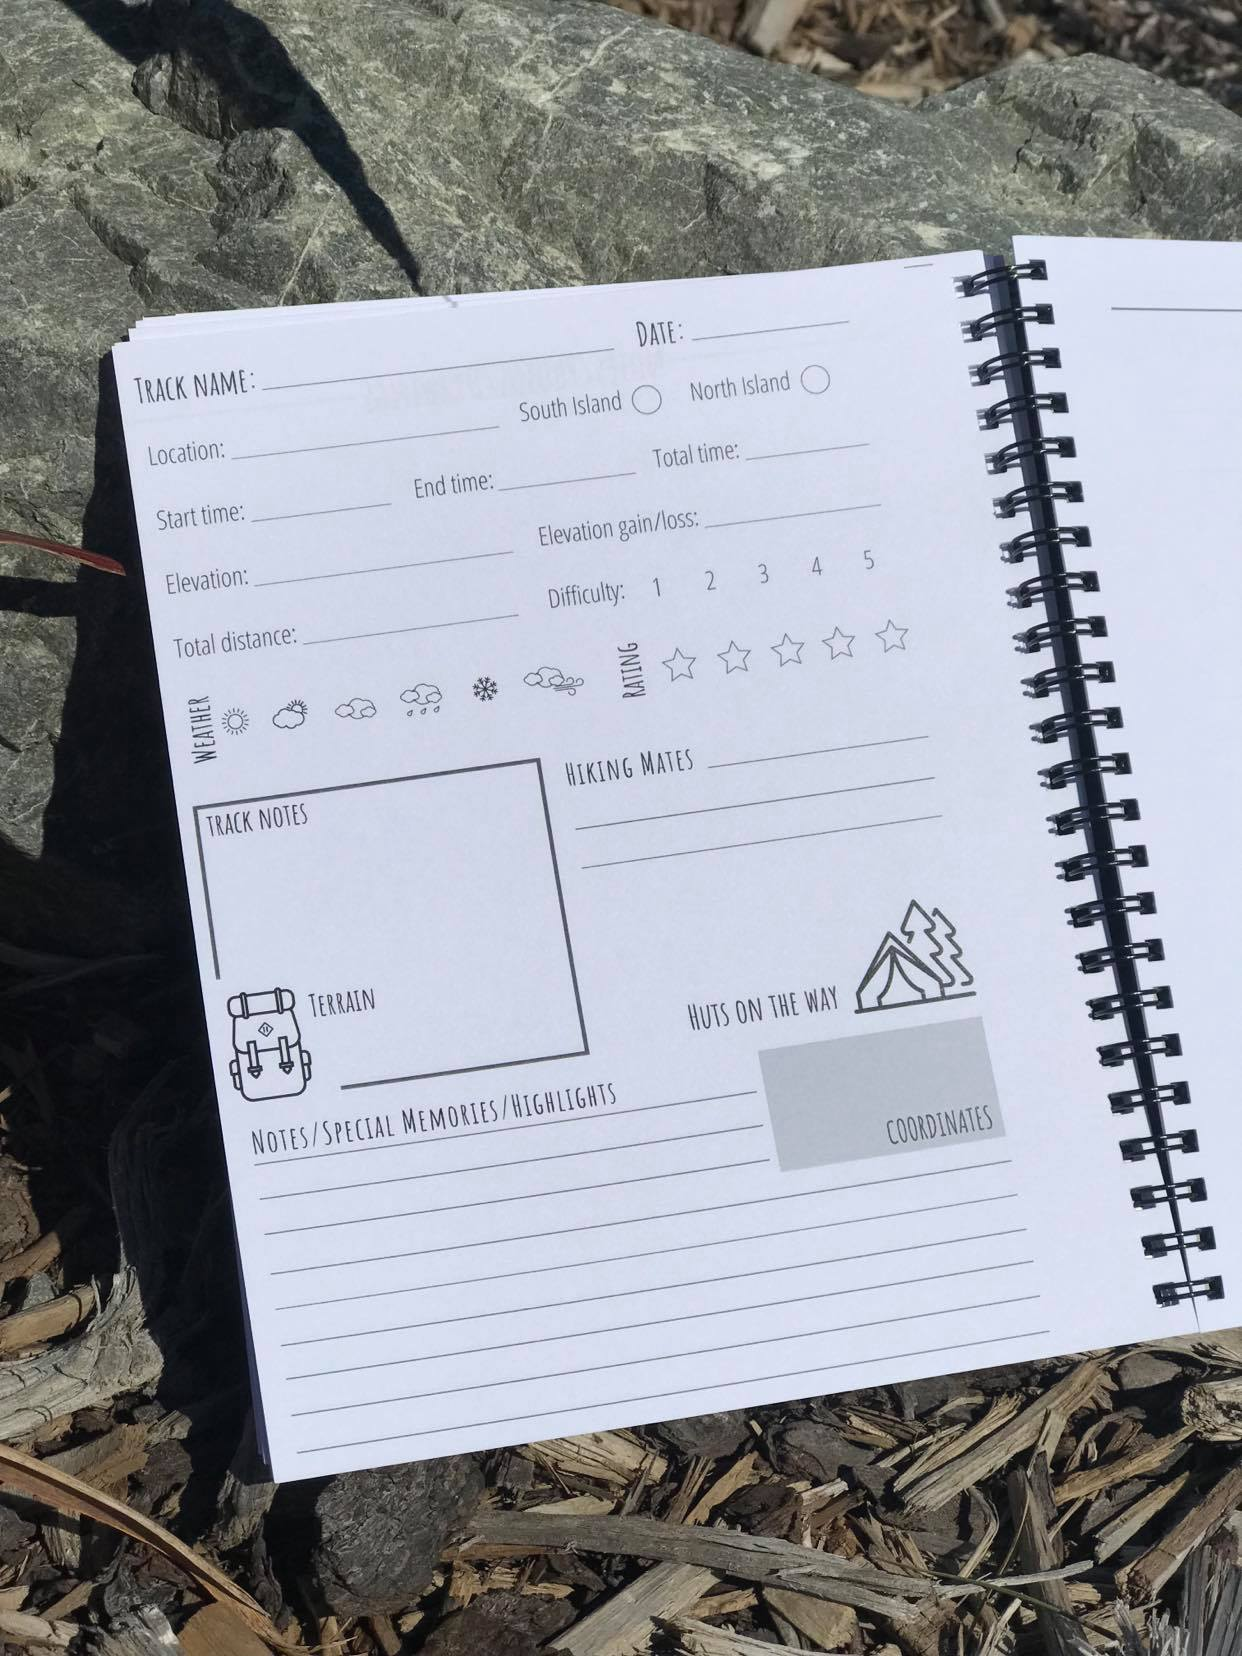 Tramping logbook- VERY SLIGHT DEFECT ON PAGES via @chooicenz